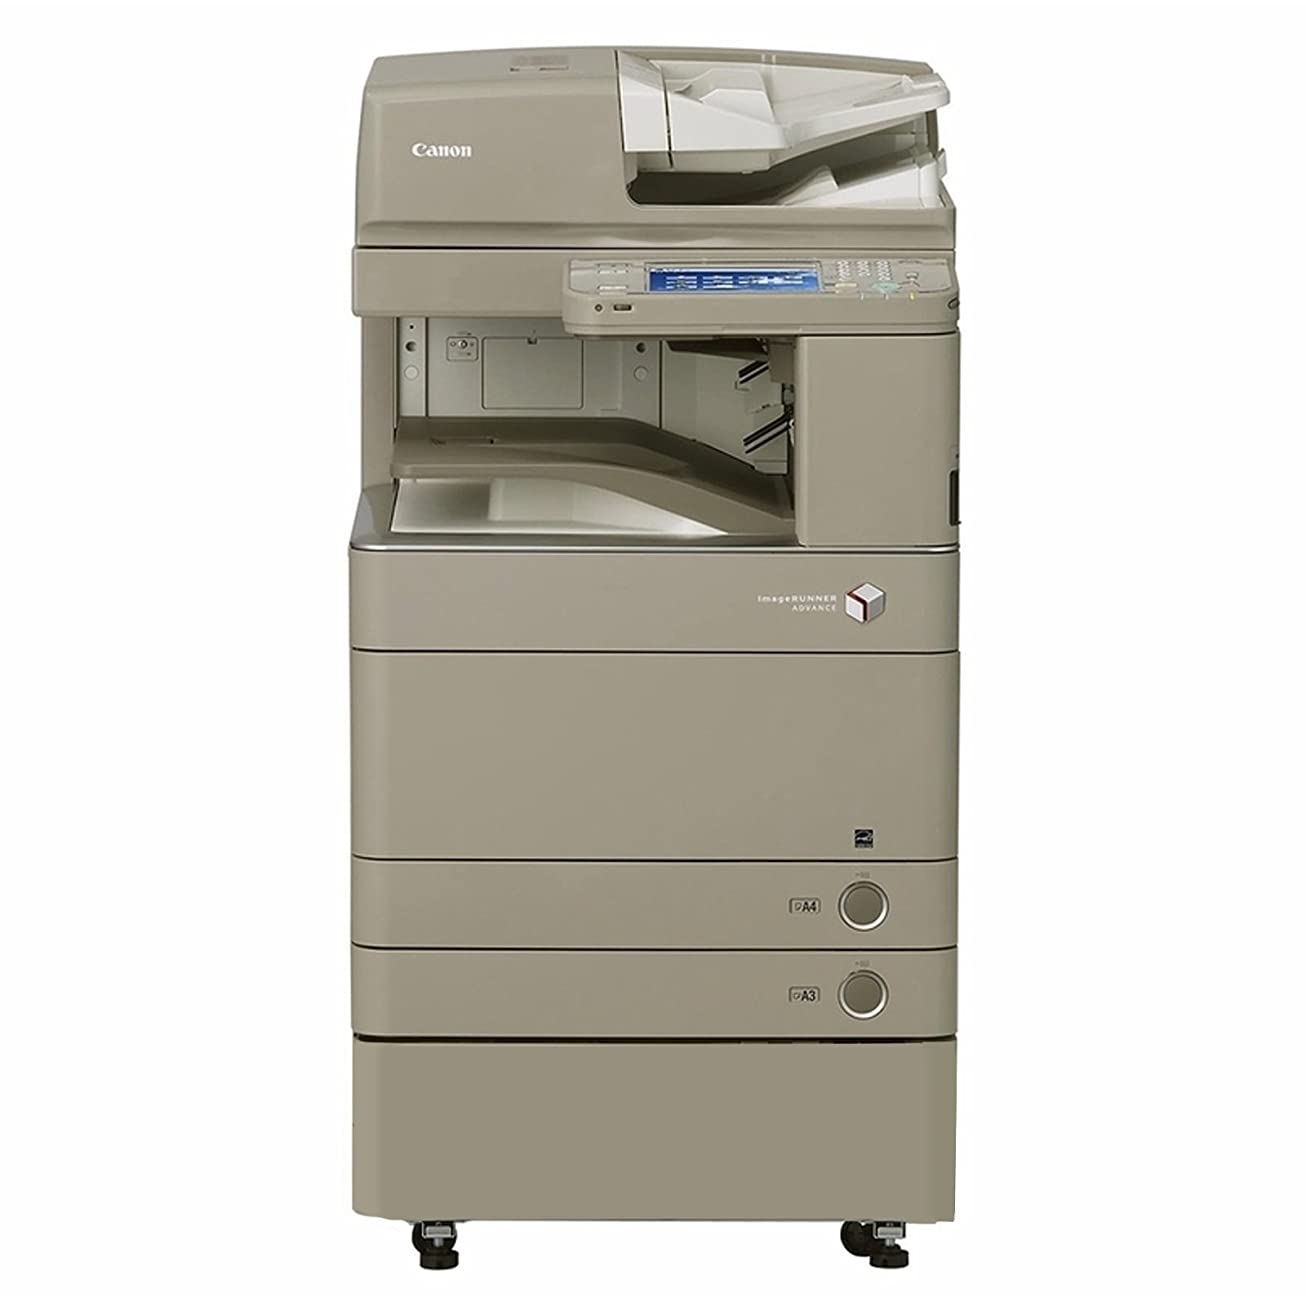 Refurbished Canon ImageRunner Advance C5030 Color Copier - 30ppm, Copy, Print, Scan, Network, Duplex, USB Direct Print/Scan, 2 Trays and Stand lkrqhewaljee6